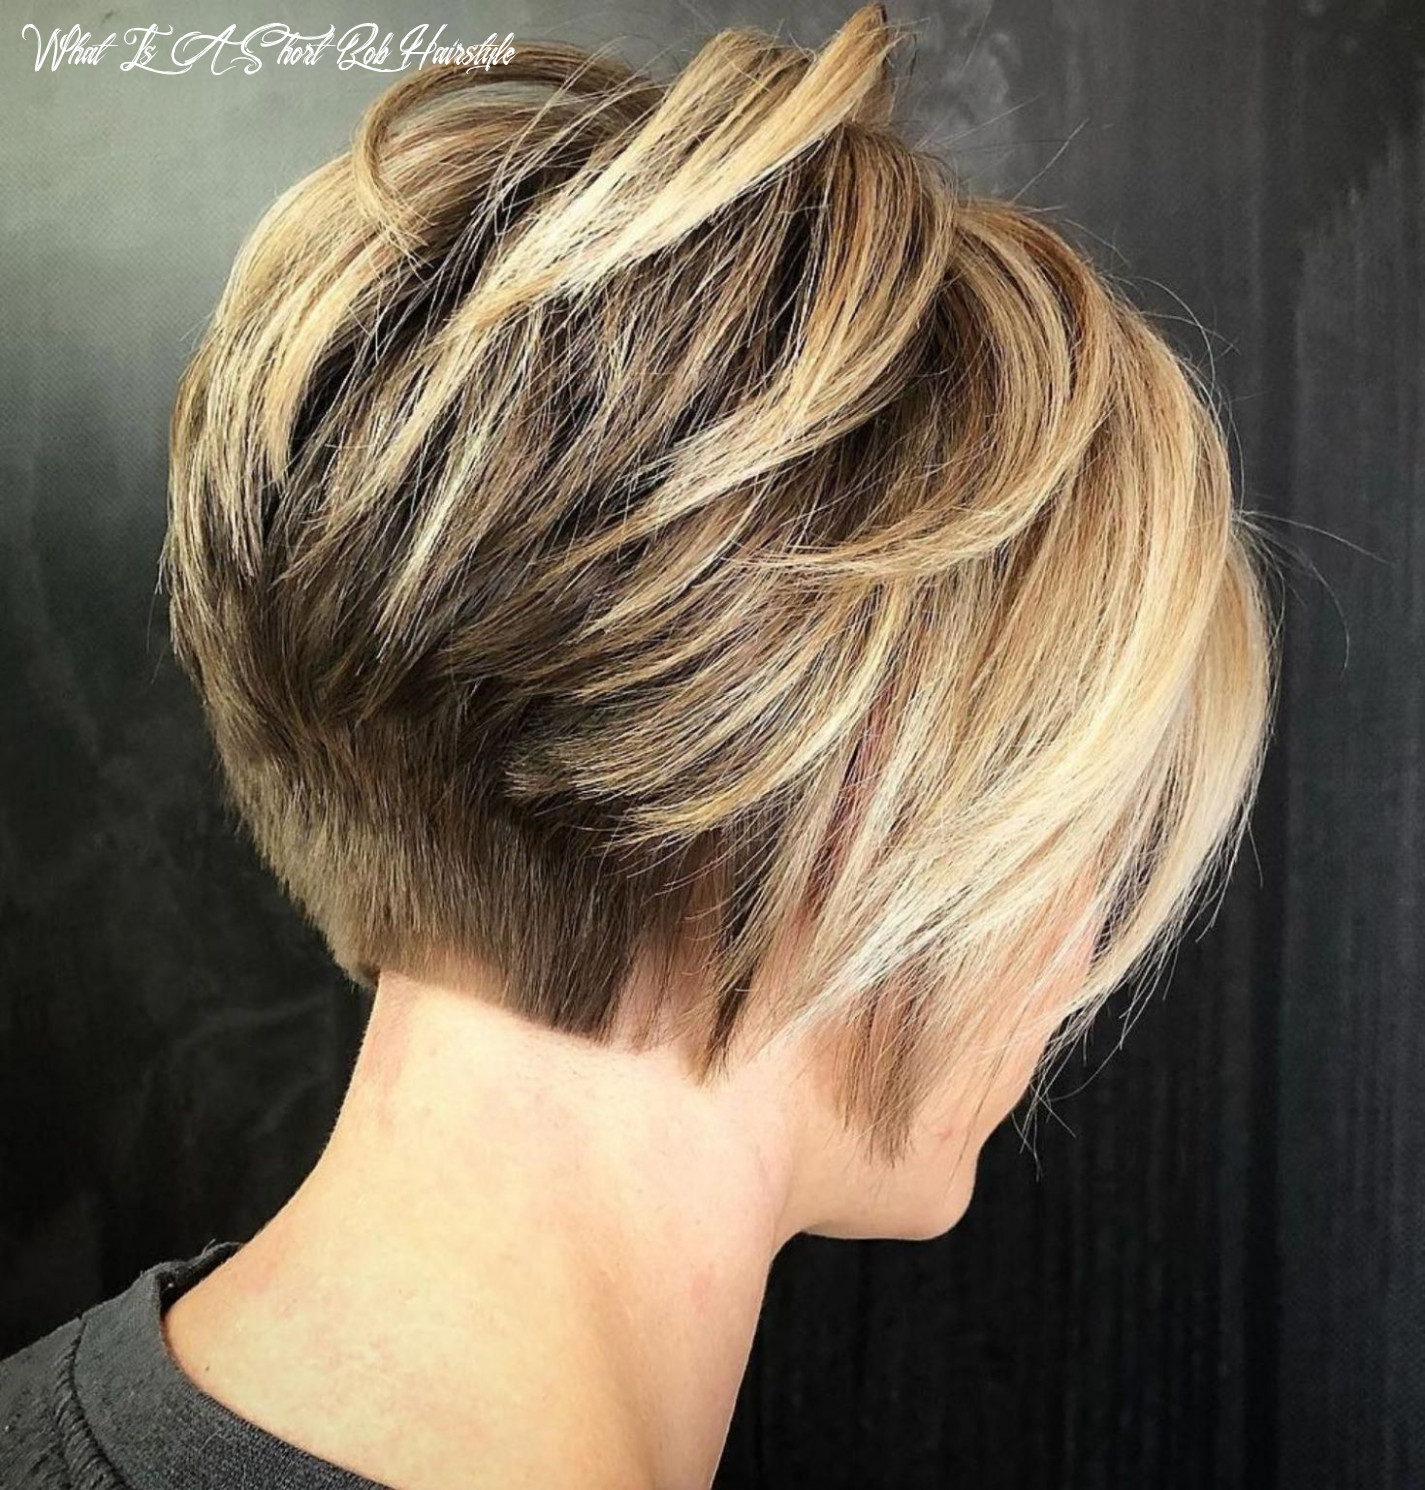 10 hottest asymmetrical bob haircuts for 2010 for women in 10